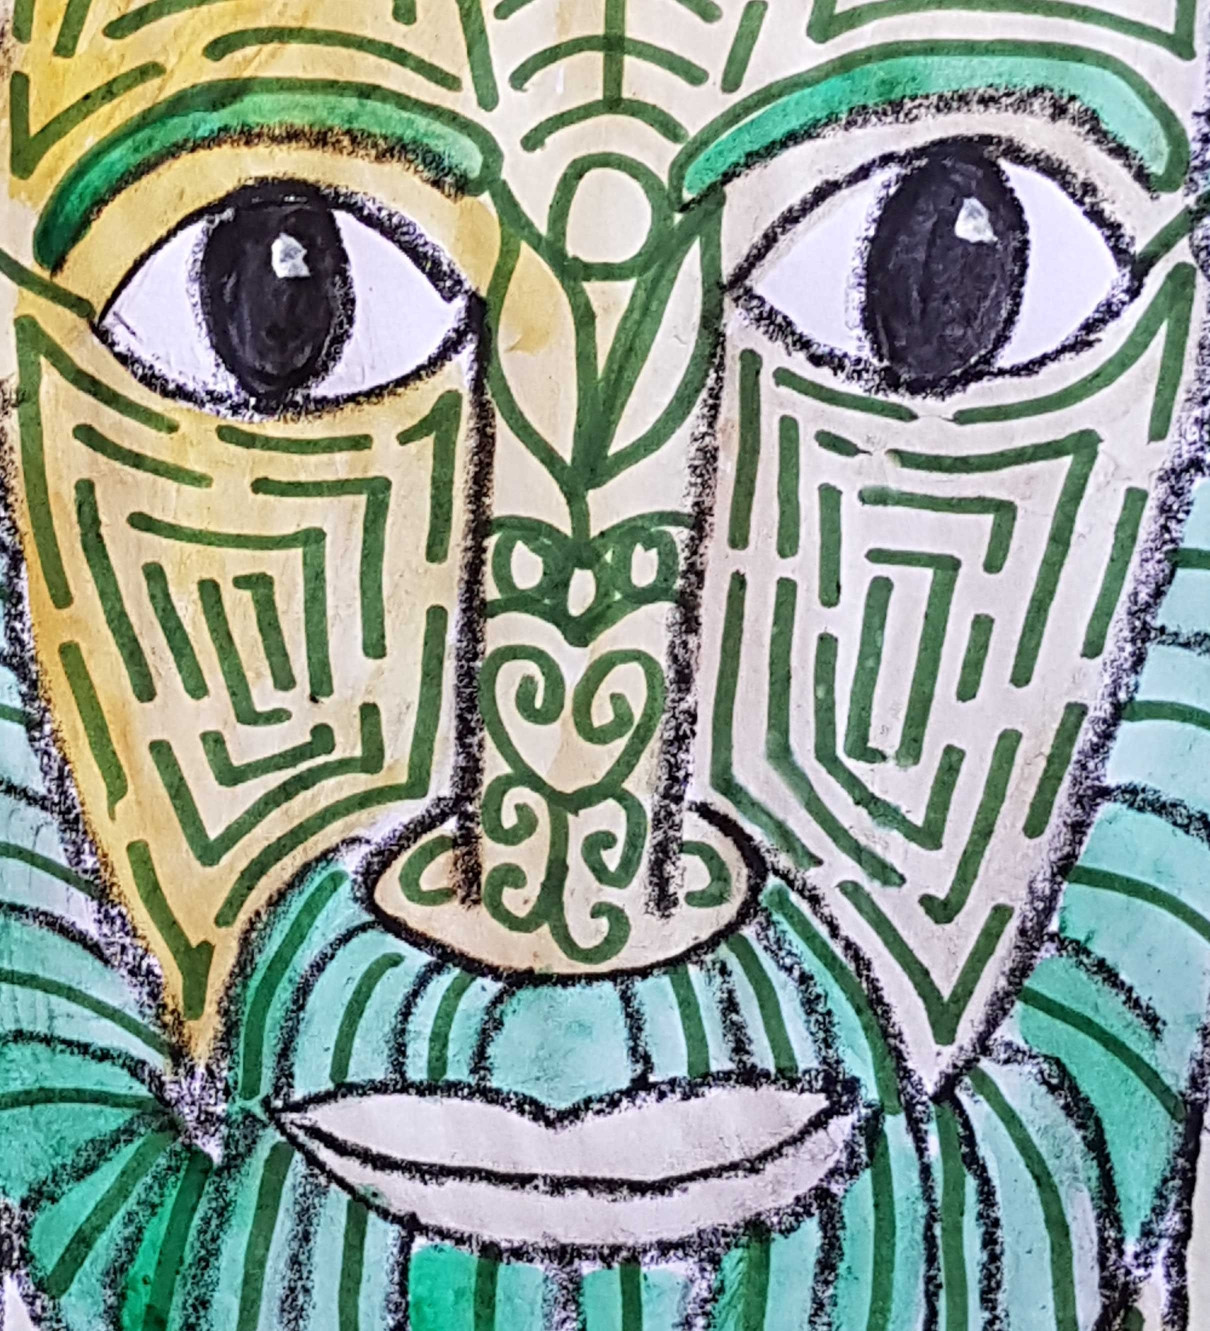 The Green Man.